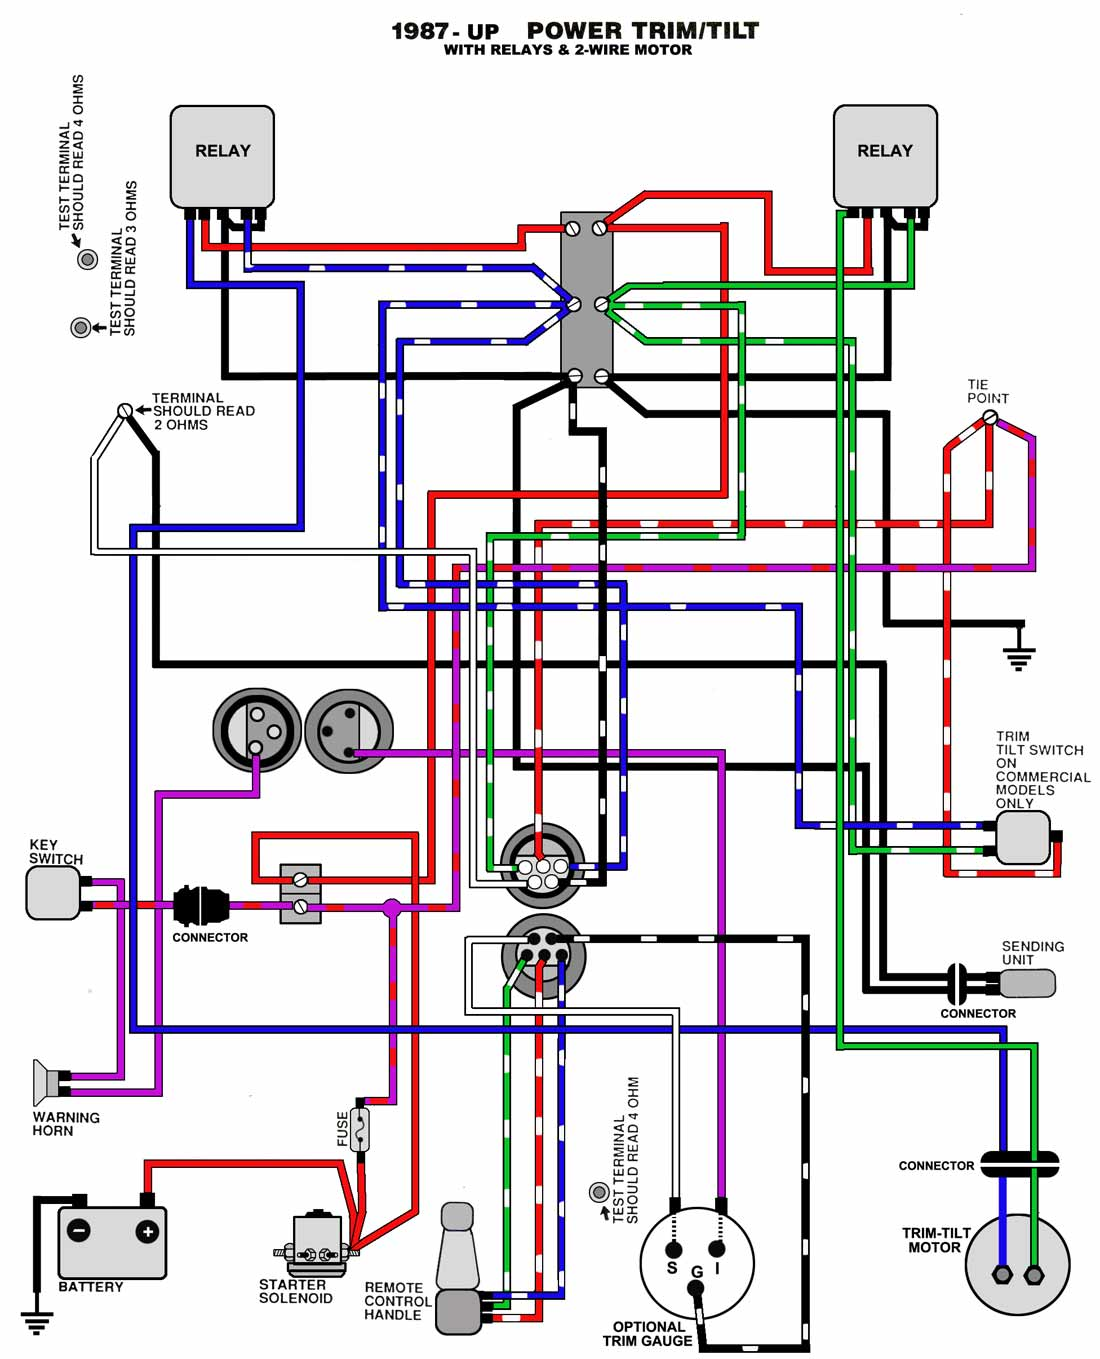 TnT_87_UP?resize=680%2C840 1969 johnson outboard wiring diagram 1969 johnson 55 hp outboard 1969 evinrude 55 hp wiring diagram at eliteediting.co